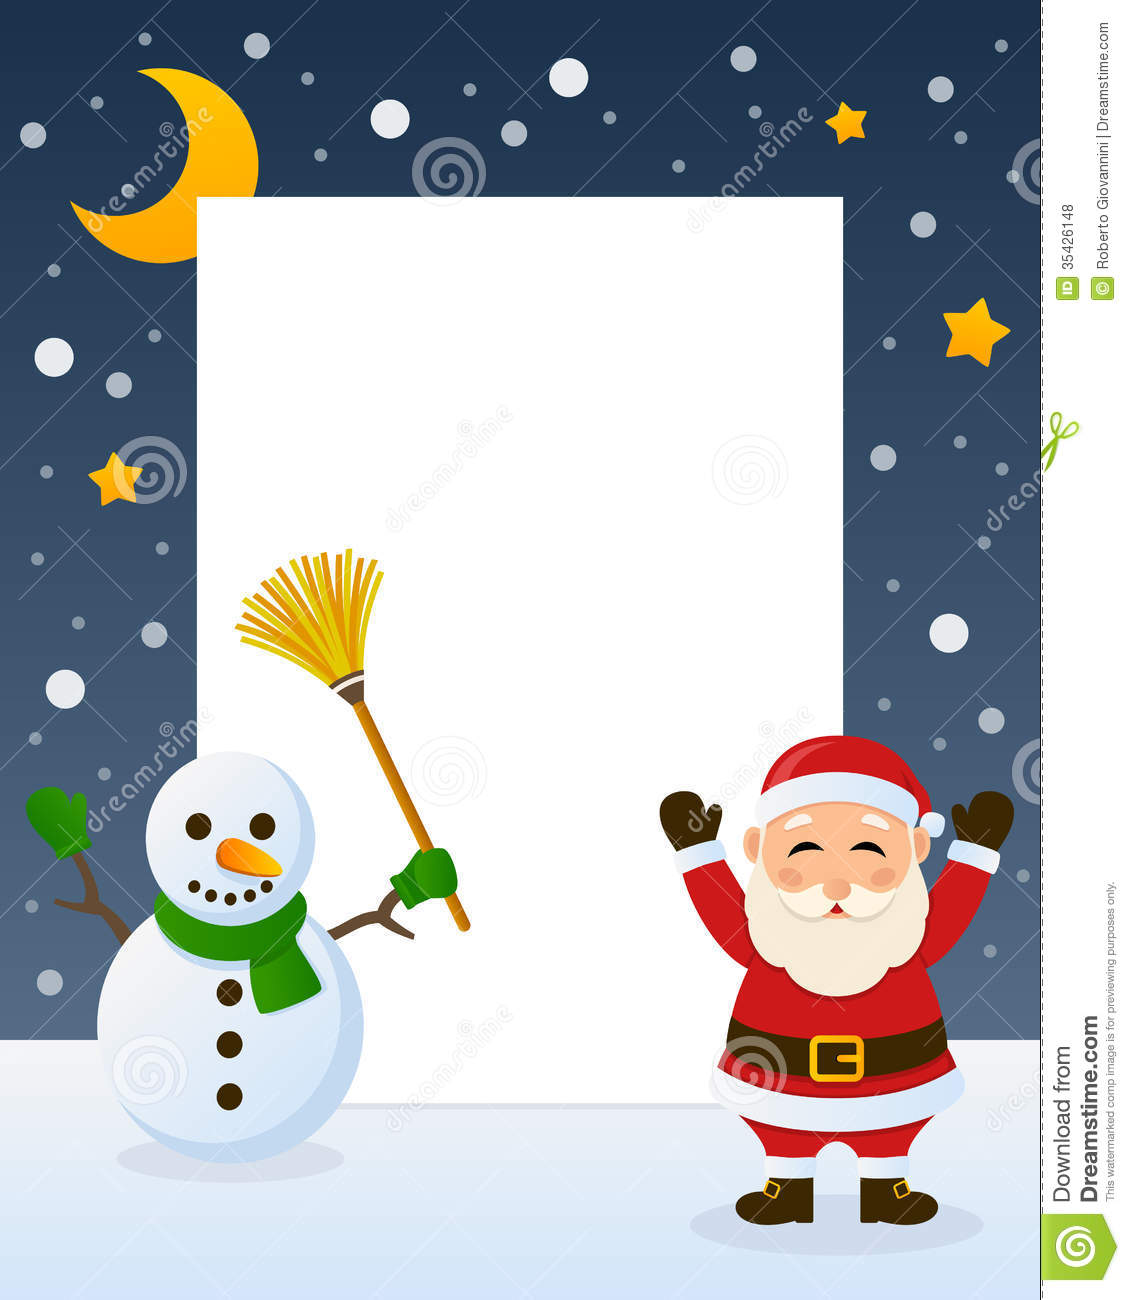 Santa Claus And Snowman Frame Royalty Free Stock Photos - Image ...